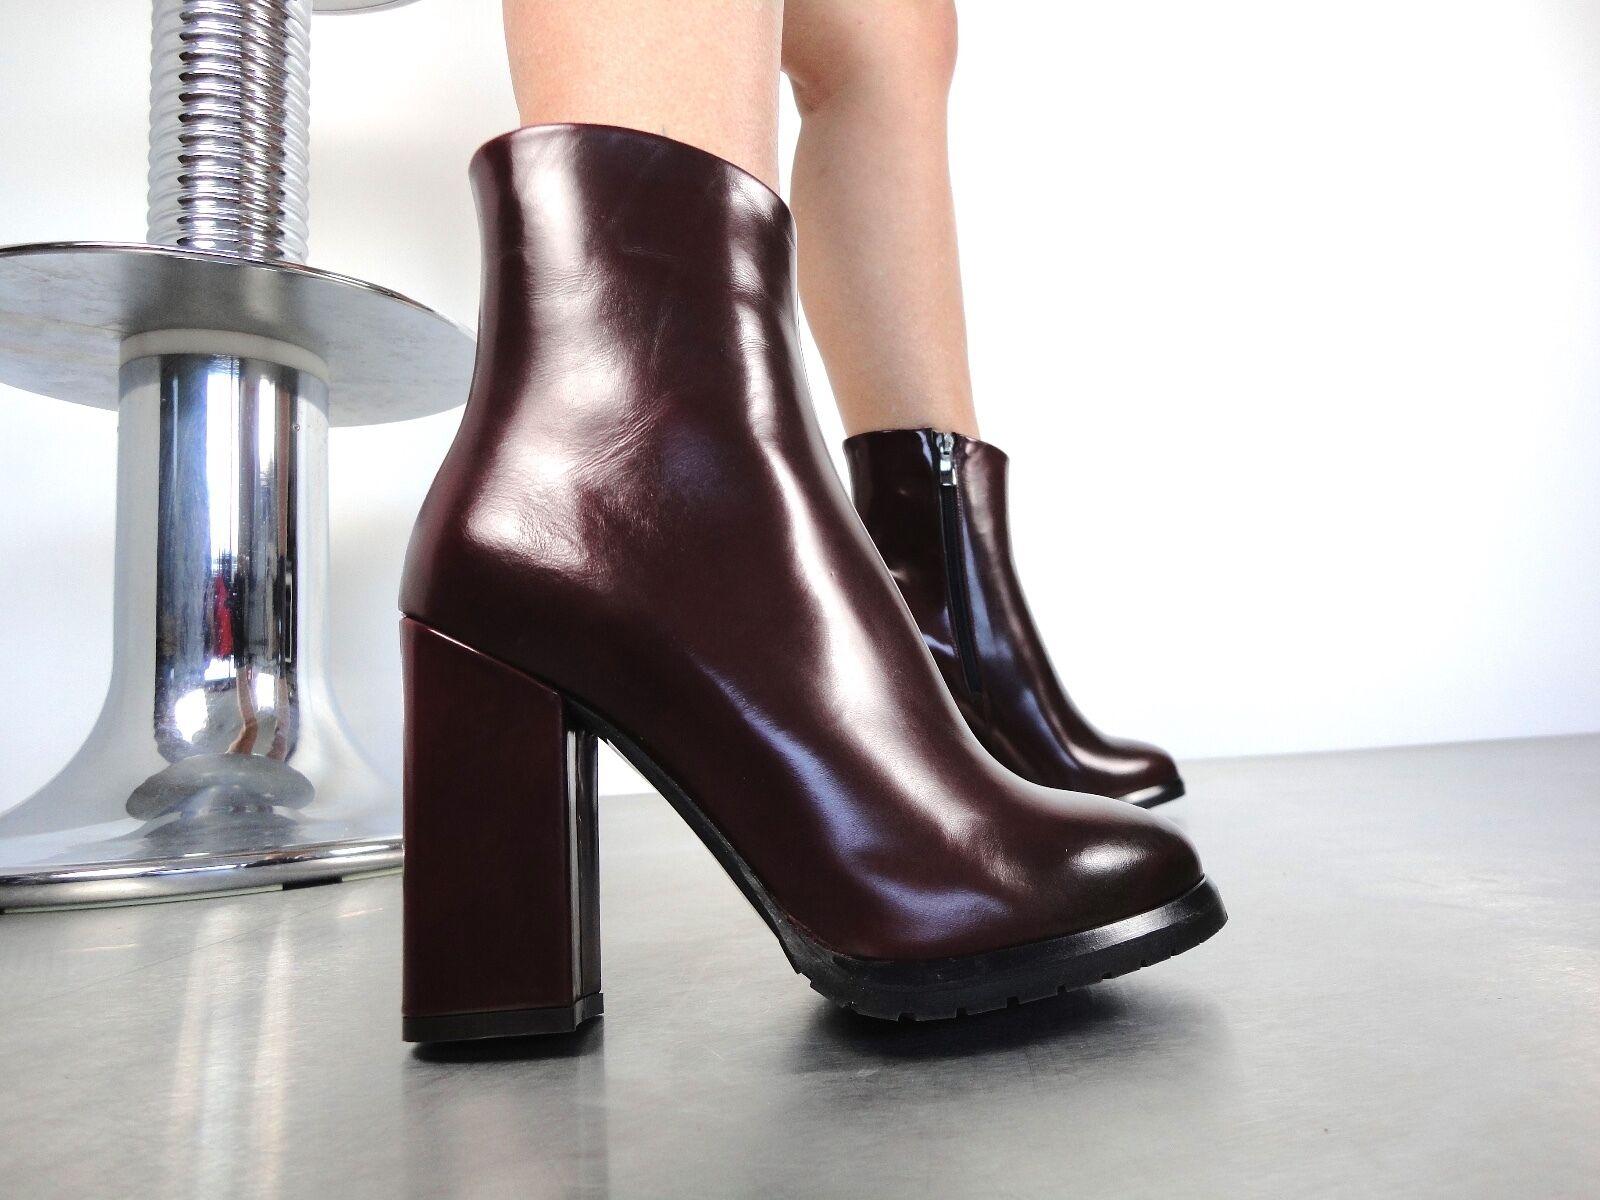 CQ COUTURE ANKLE ANKLE ANKLE HIGH BIKER HEELS BOOTS STIEFEL BOOTS LEATHER RED BURGUNDY 35 30b0d6